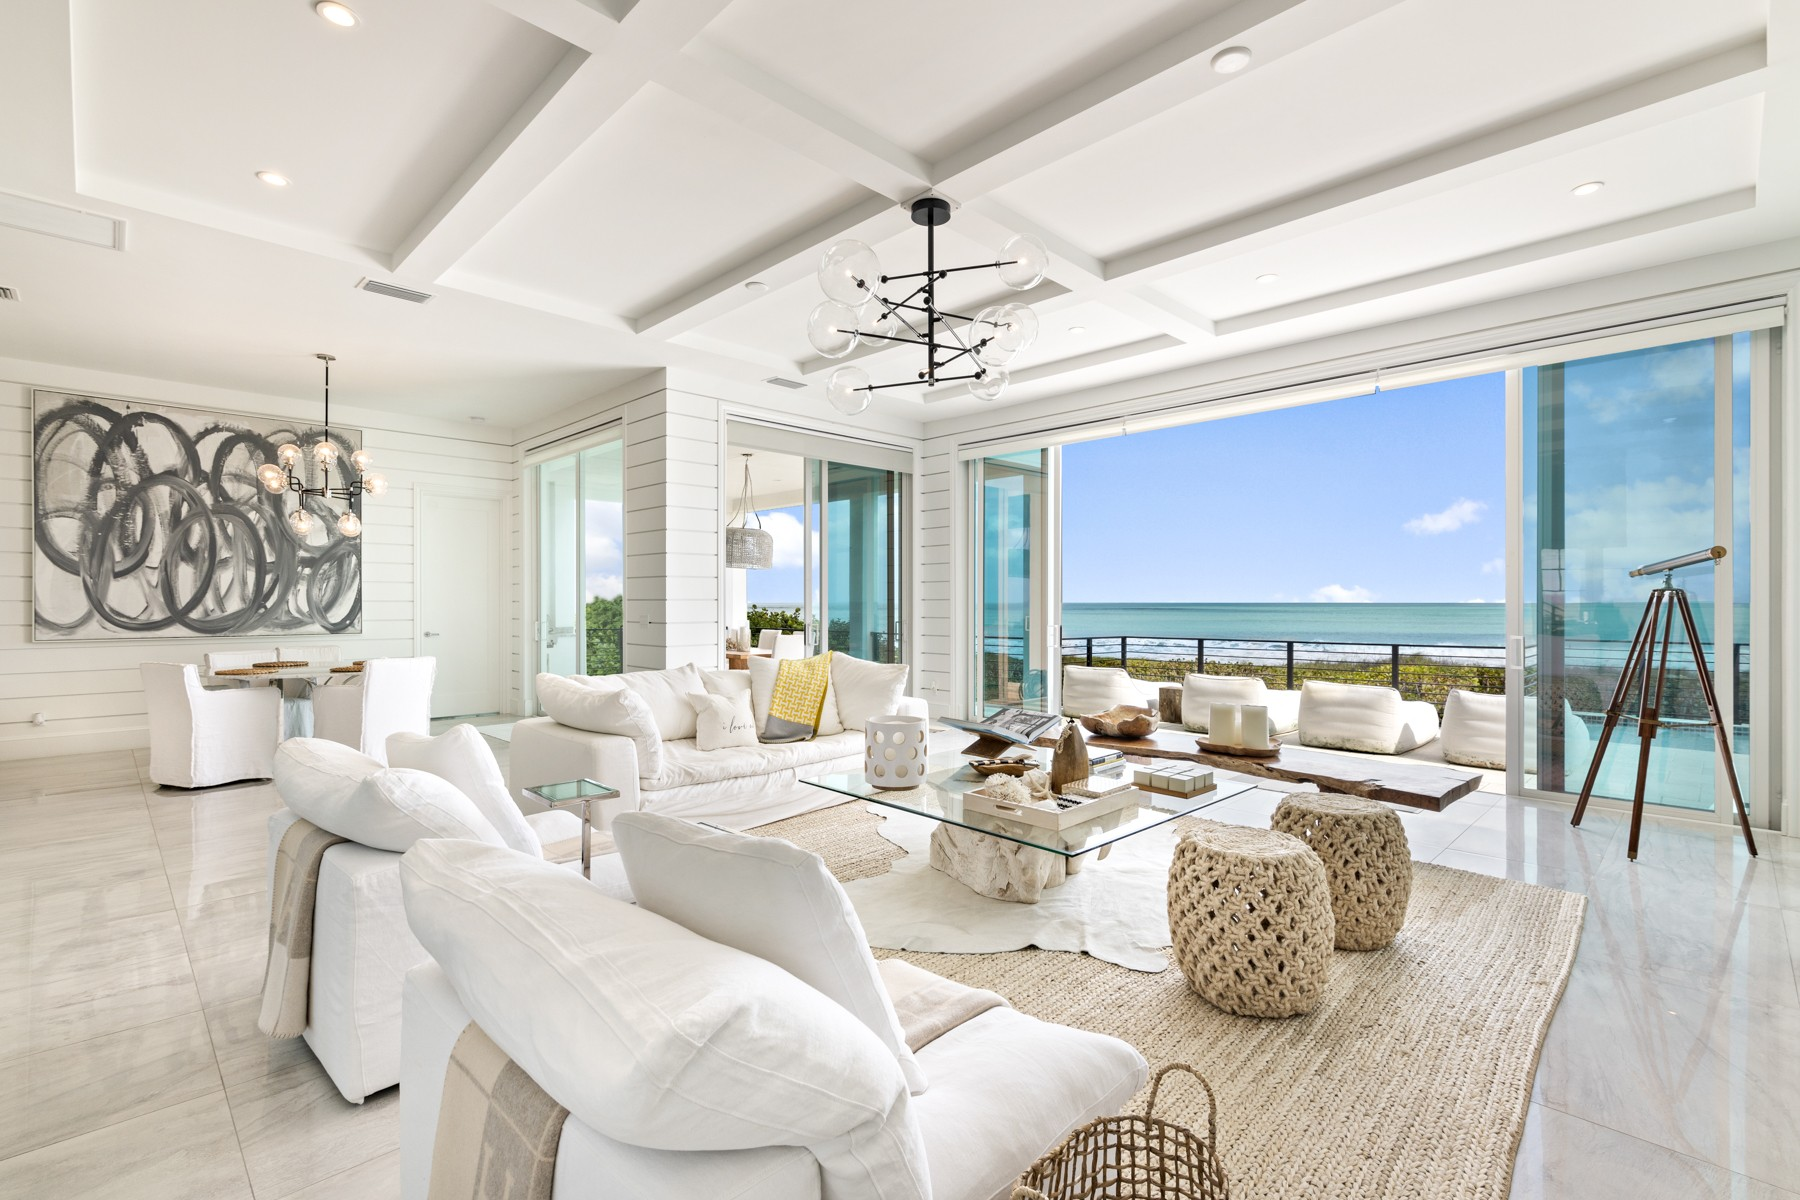 Single Family Homes for Sale at Oceanfront Designer Masterpiece 4440 N Highway A1A Hutchinson Island, Florida 34949 United States